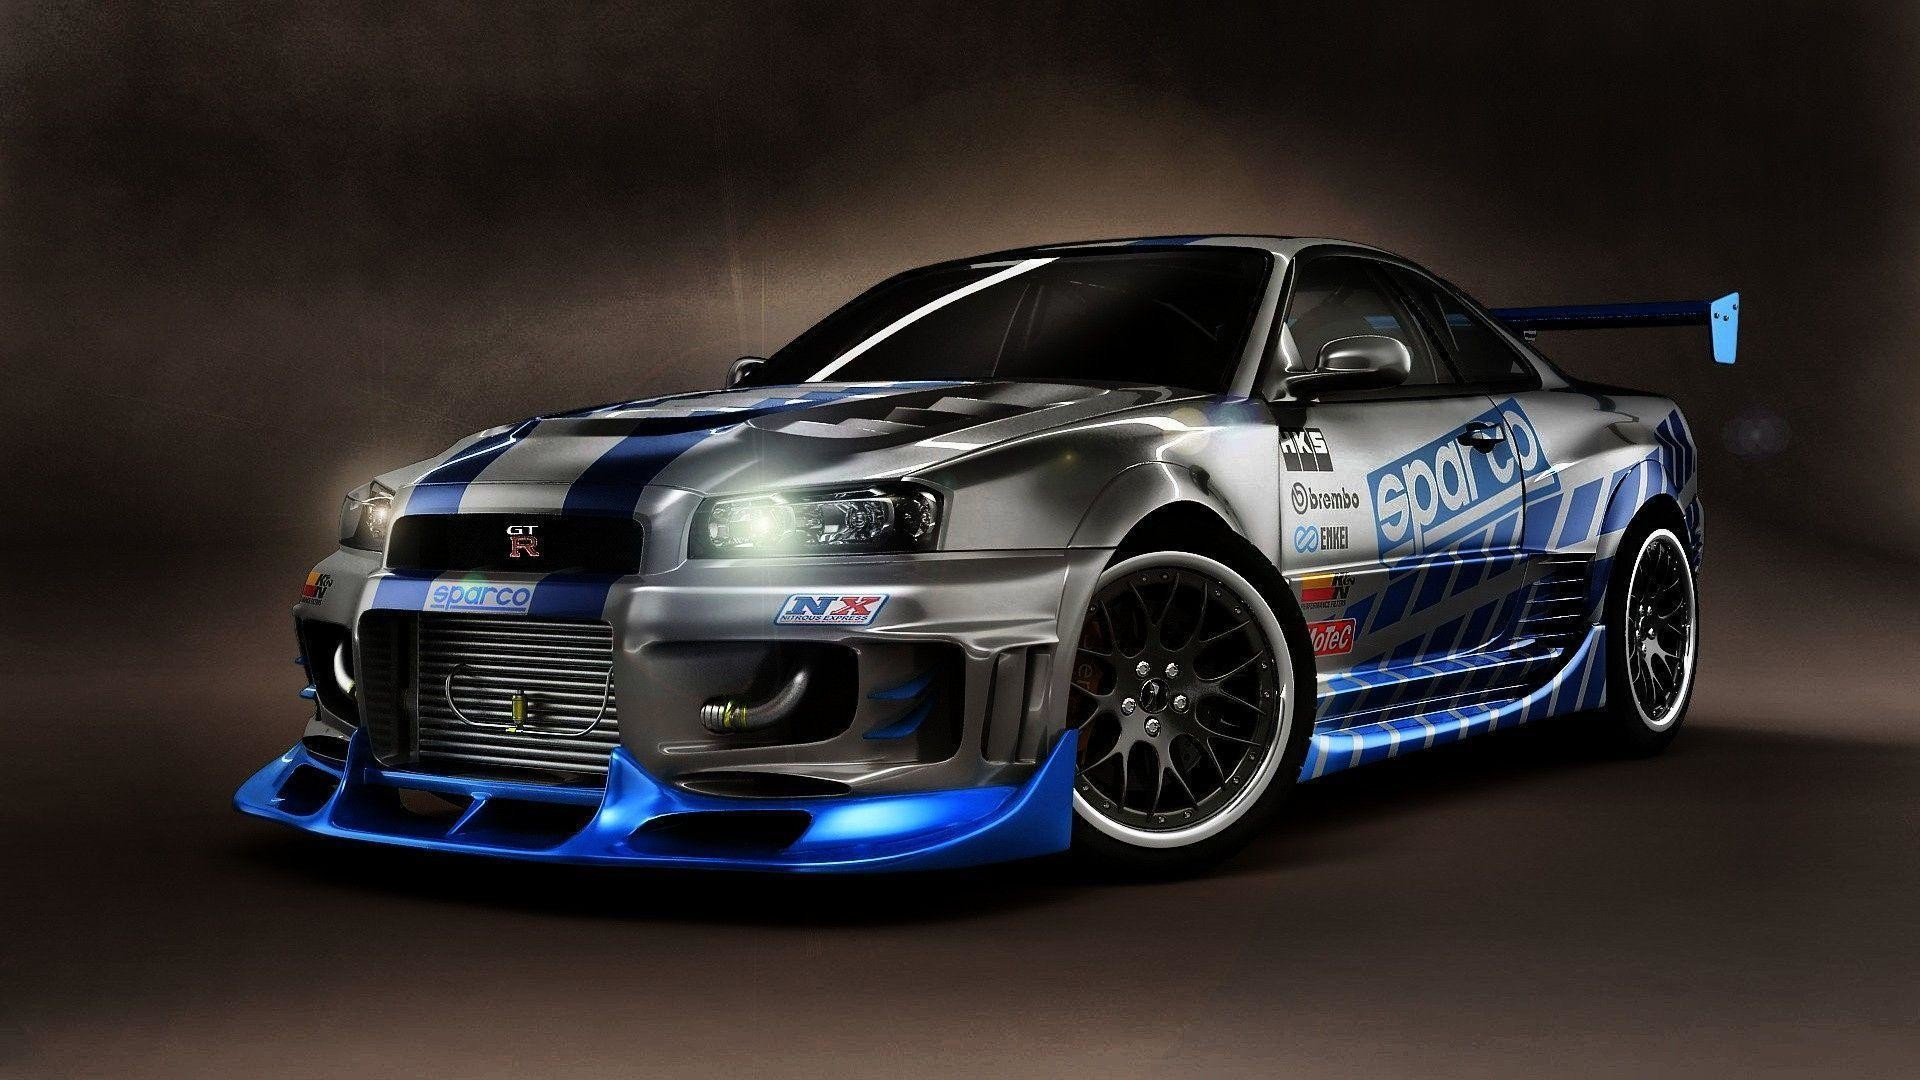 1920x1080 Nissan Skyline GTR R34 Wallpaper | Car Wallpaper HD